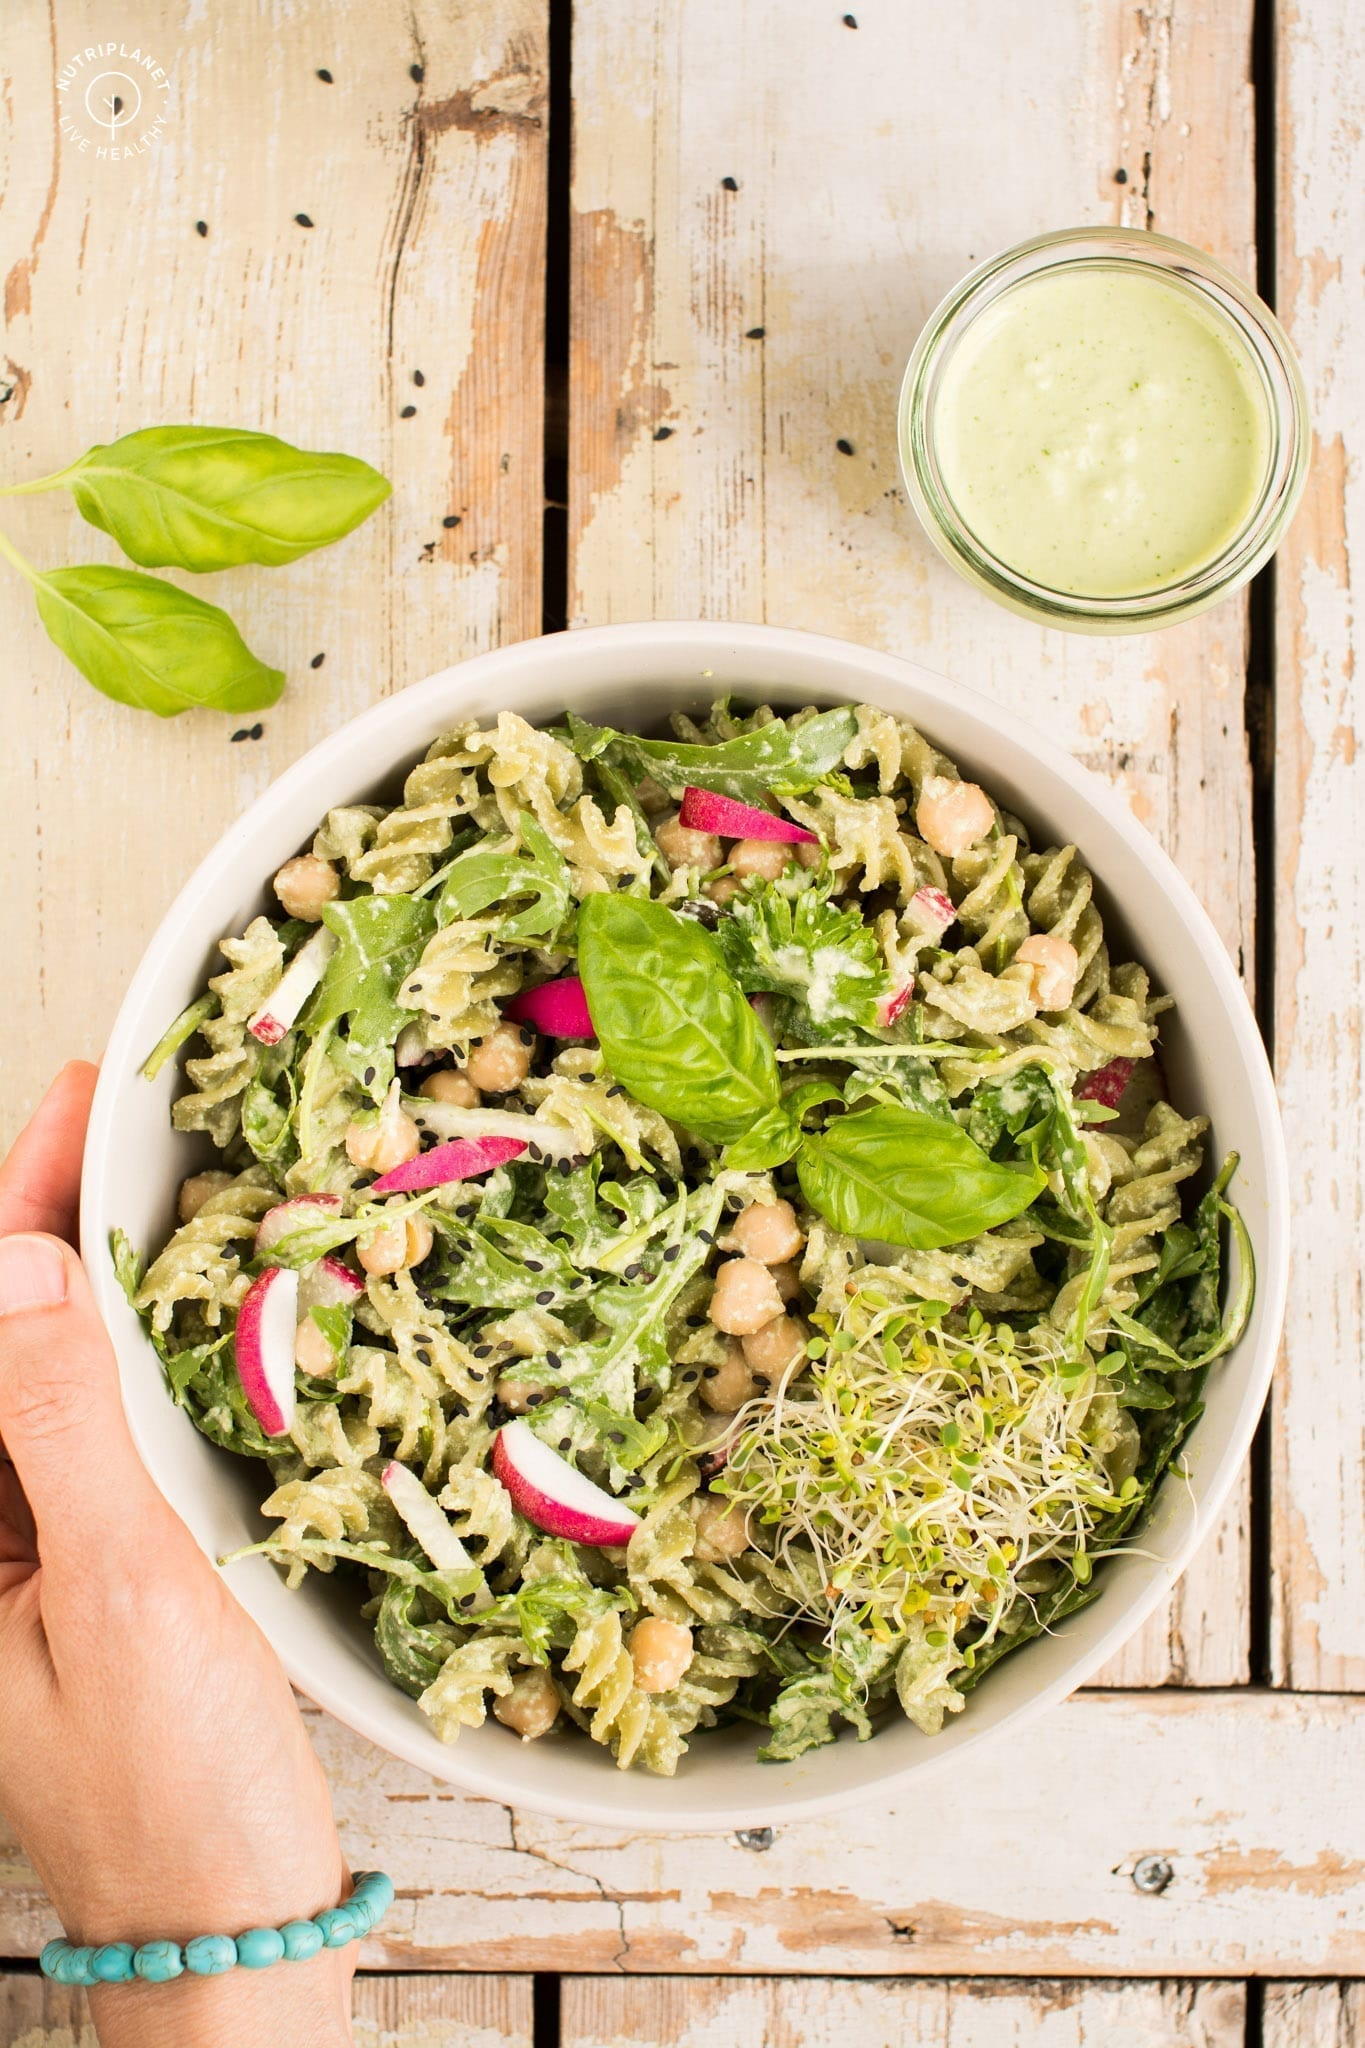 Super easy vegan basil cashew pesto pasta recipe that only requires 10 minutes of your time.